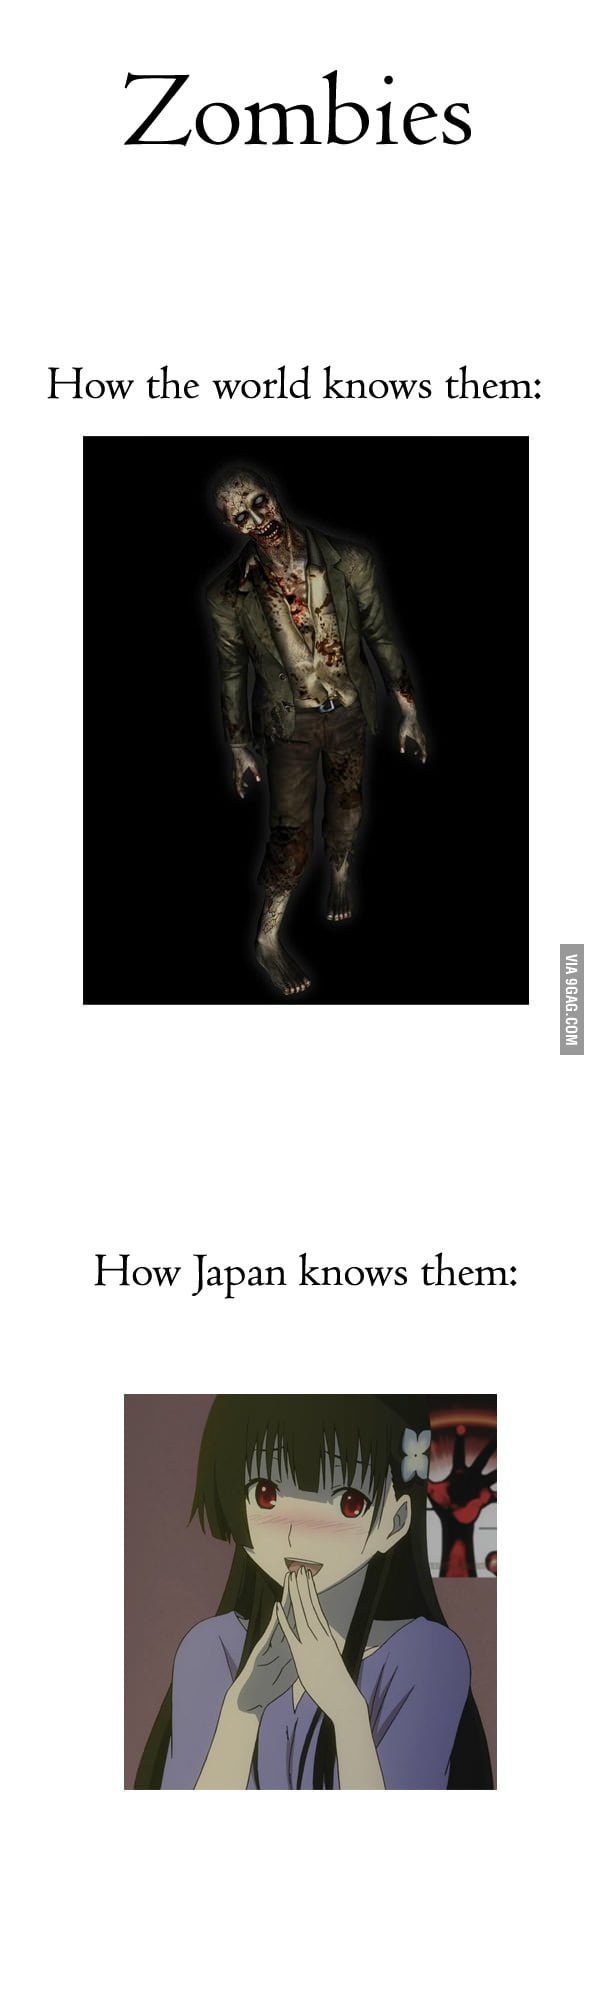 Zombies in Japan